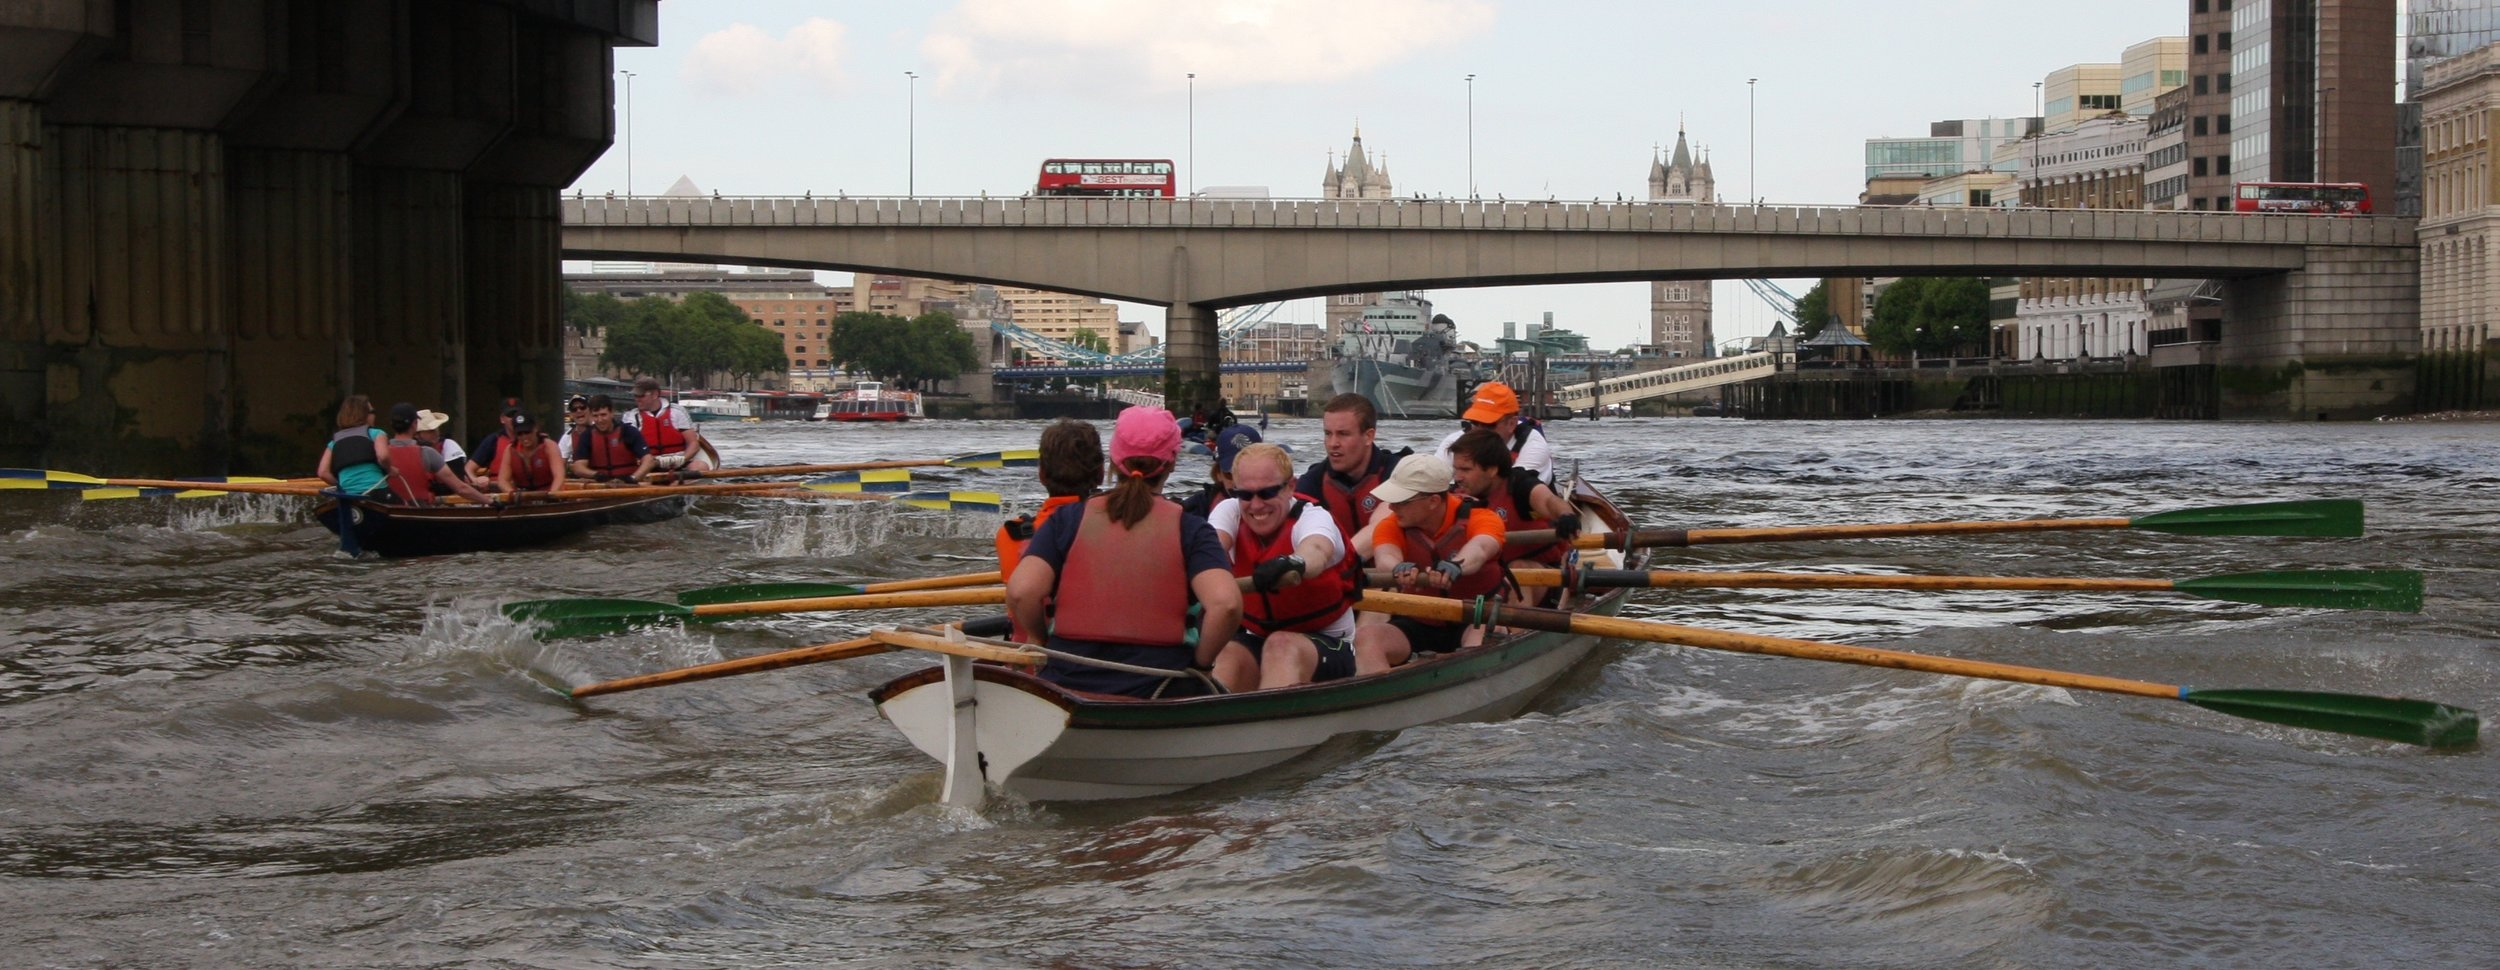 Rowing Down The River Thames.jpg